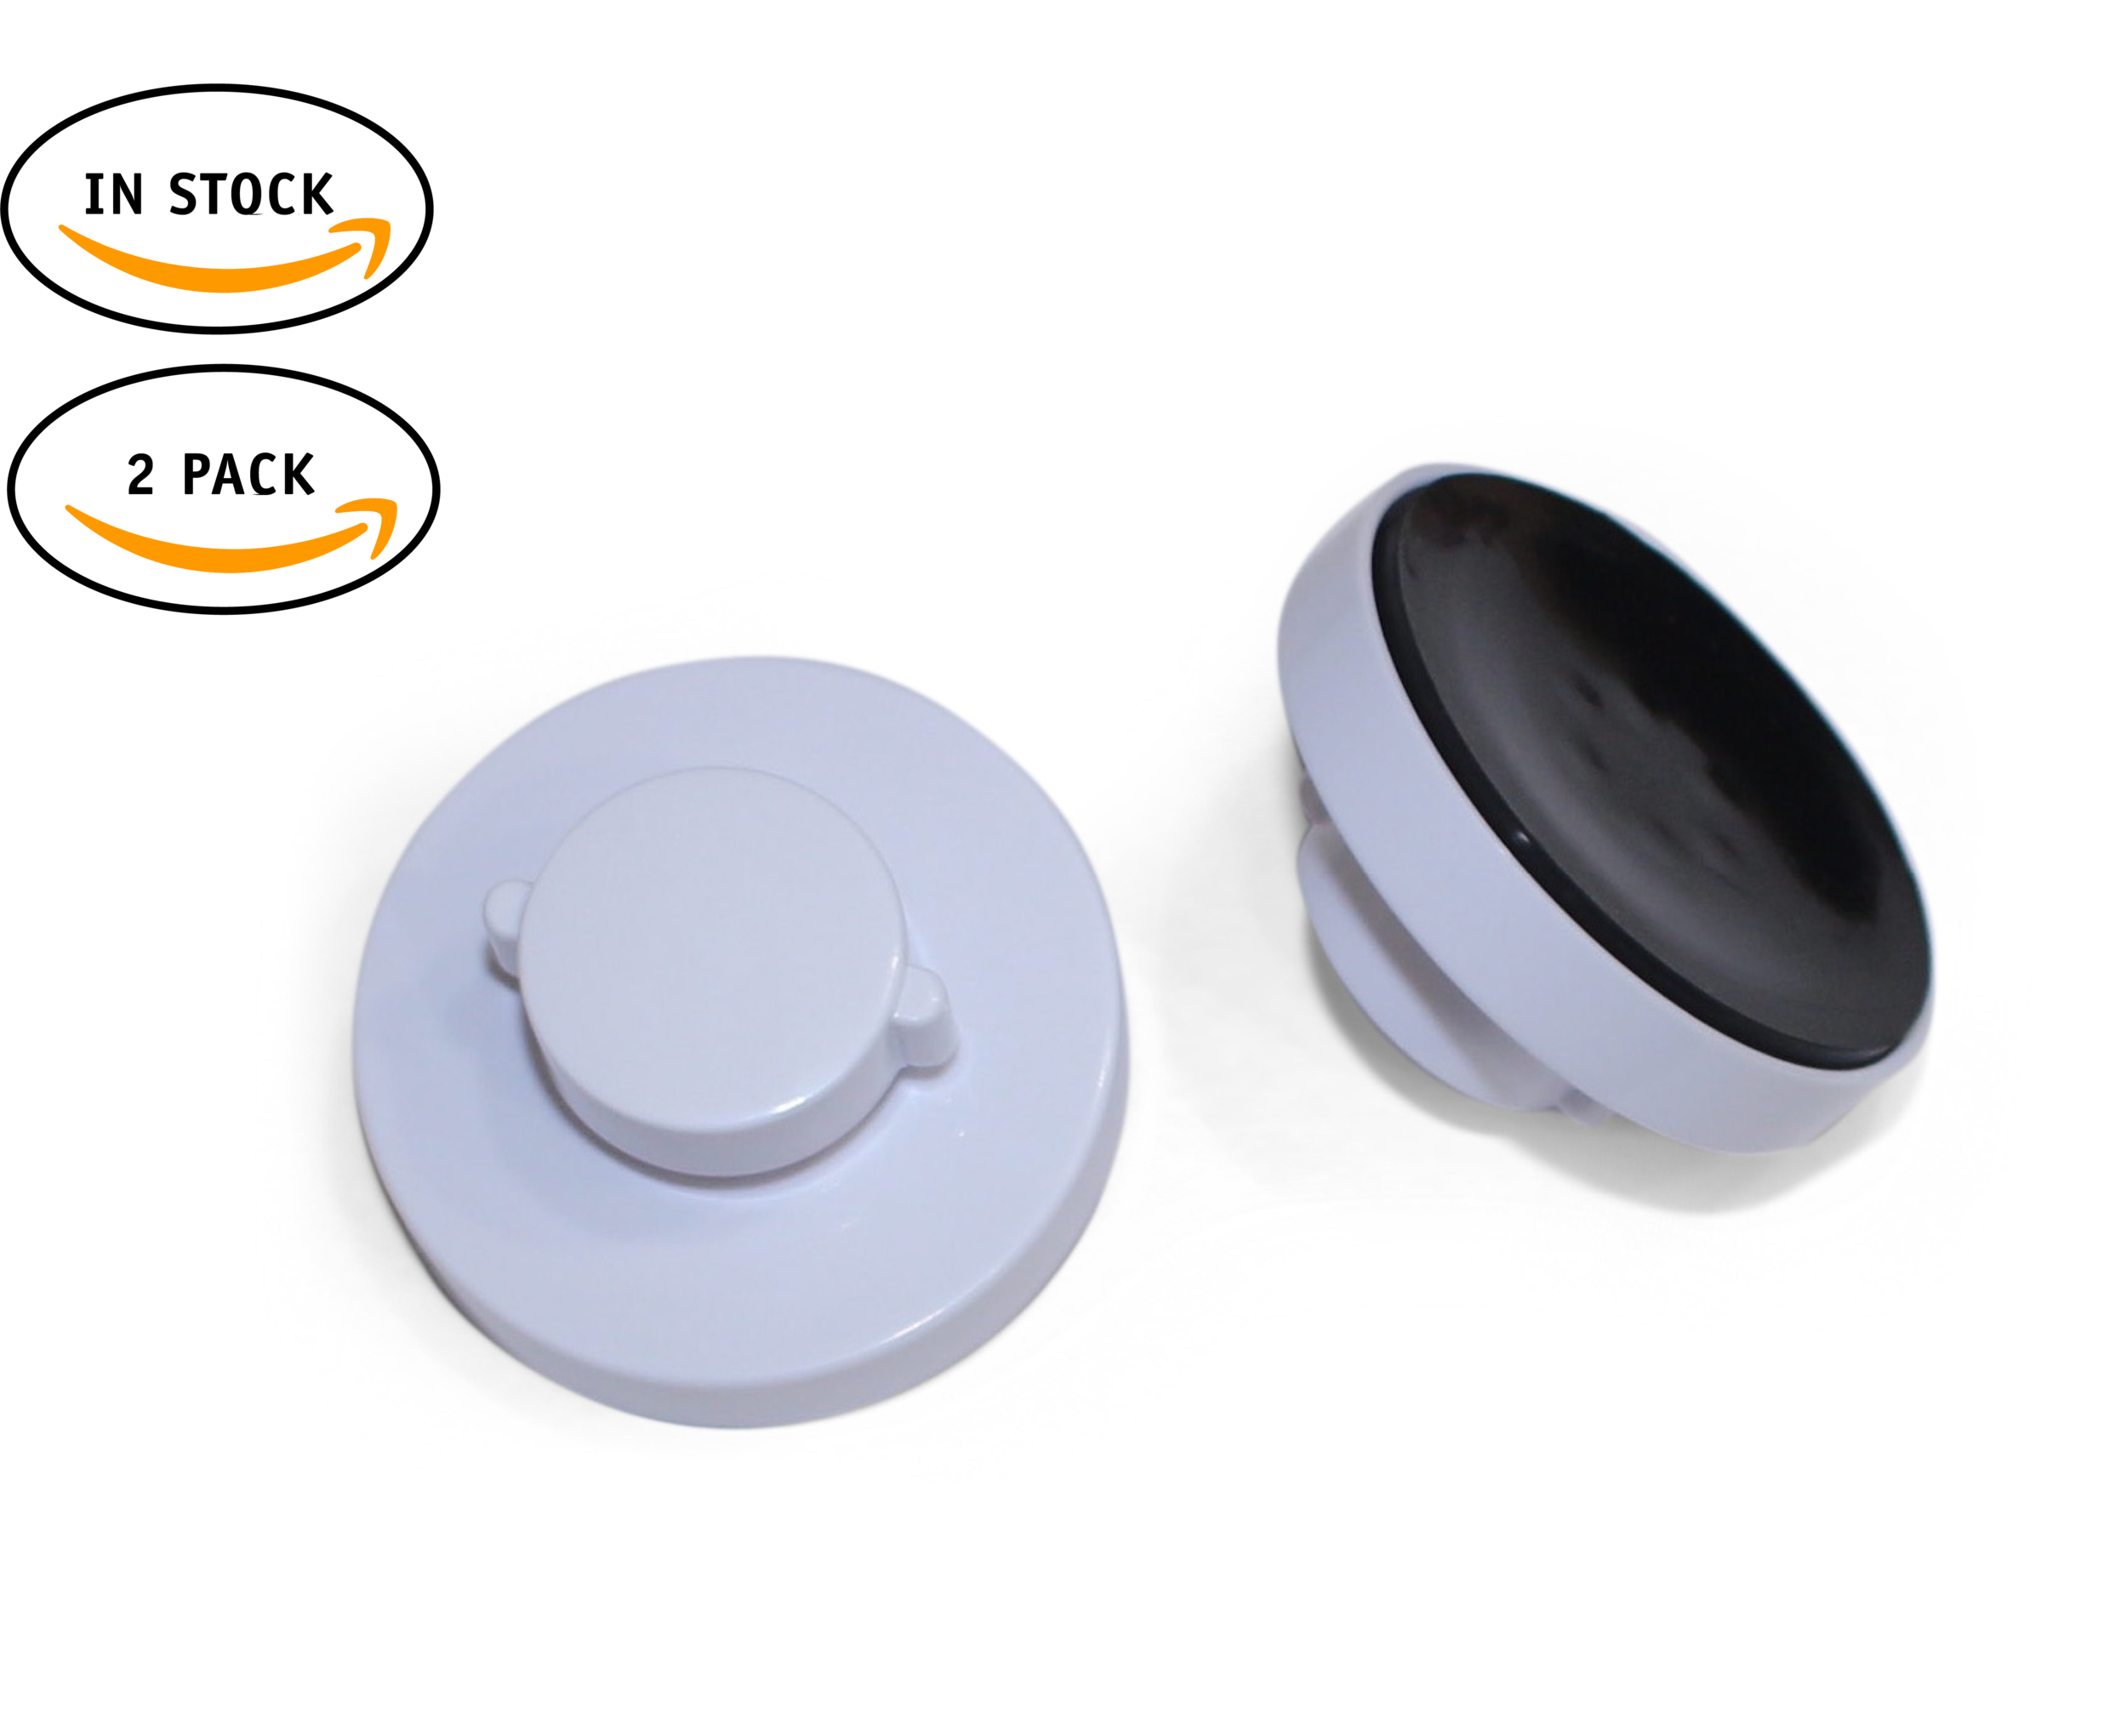 Replacement commercial-grade suction cups $9.75